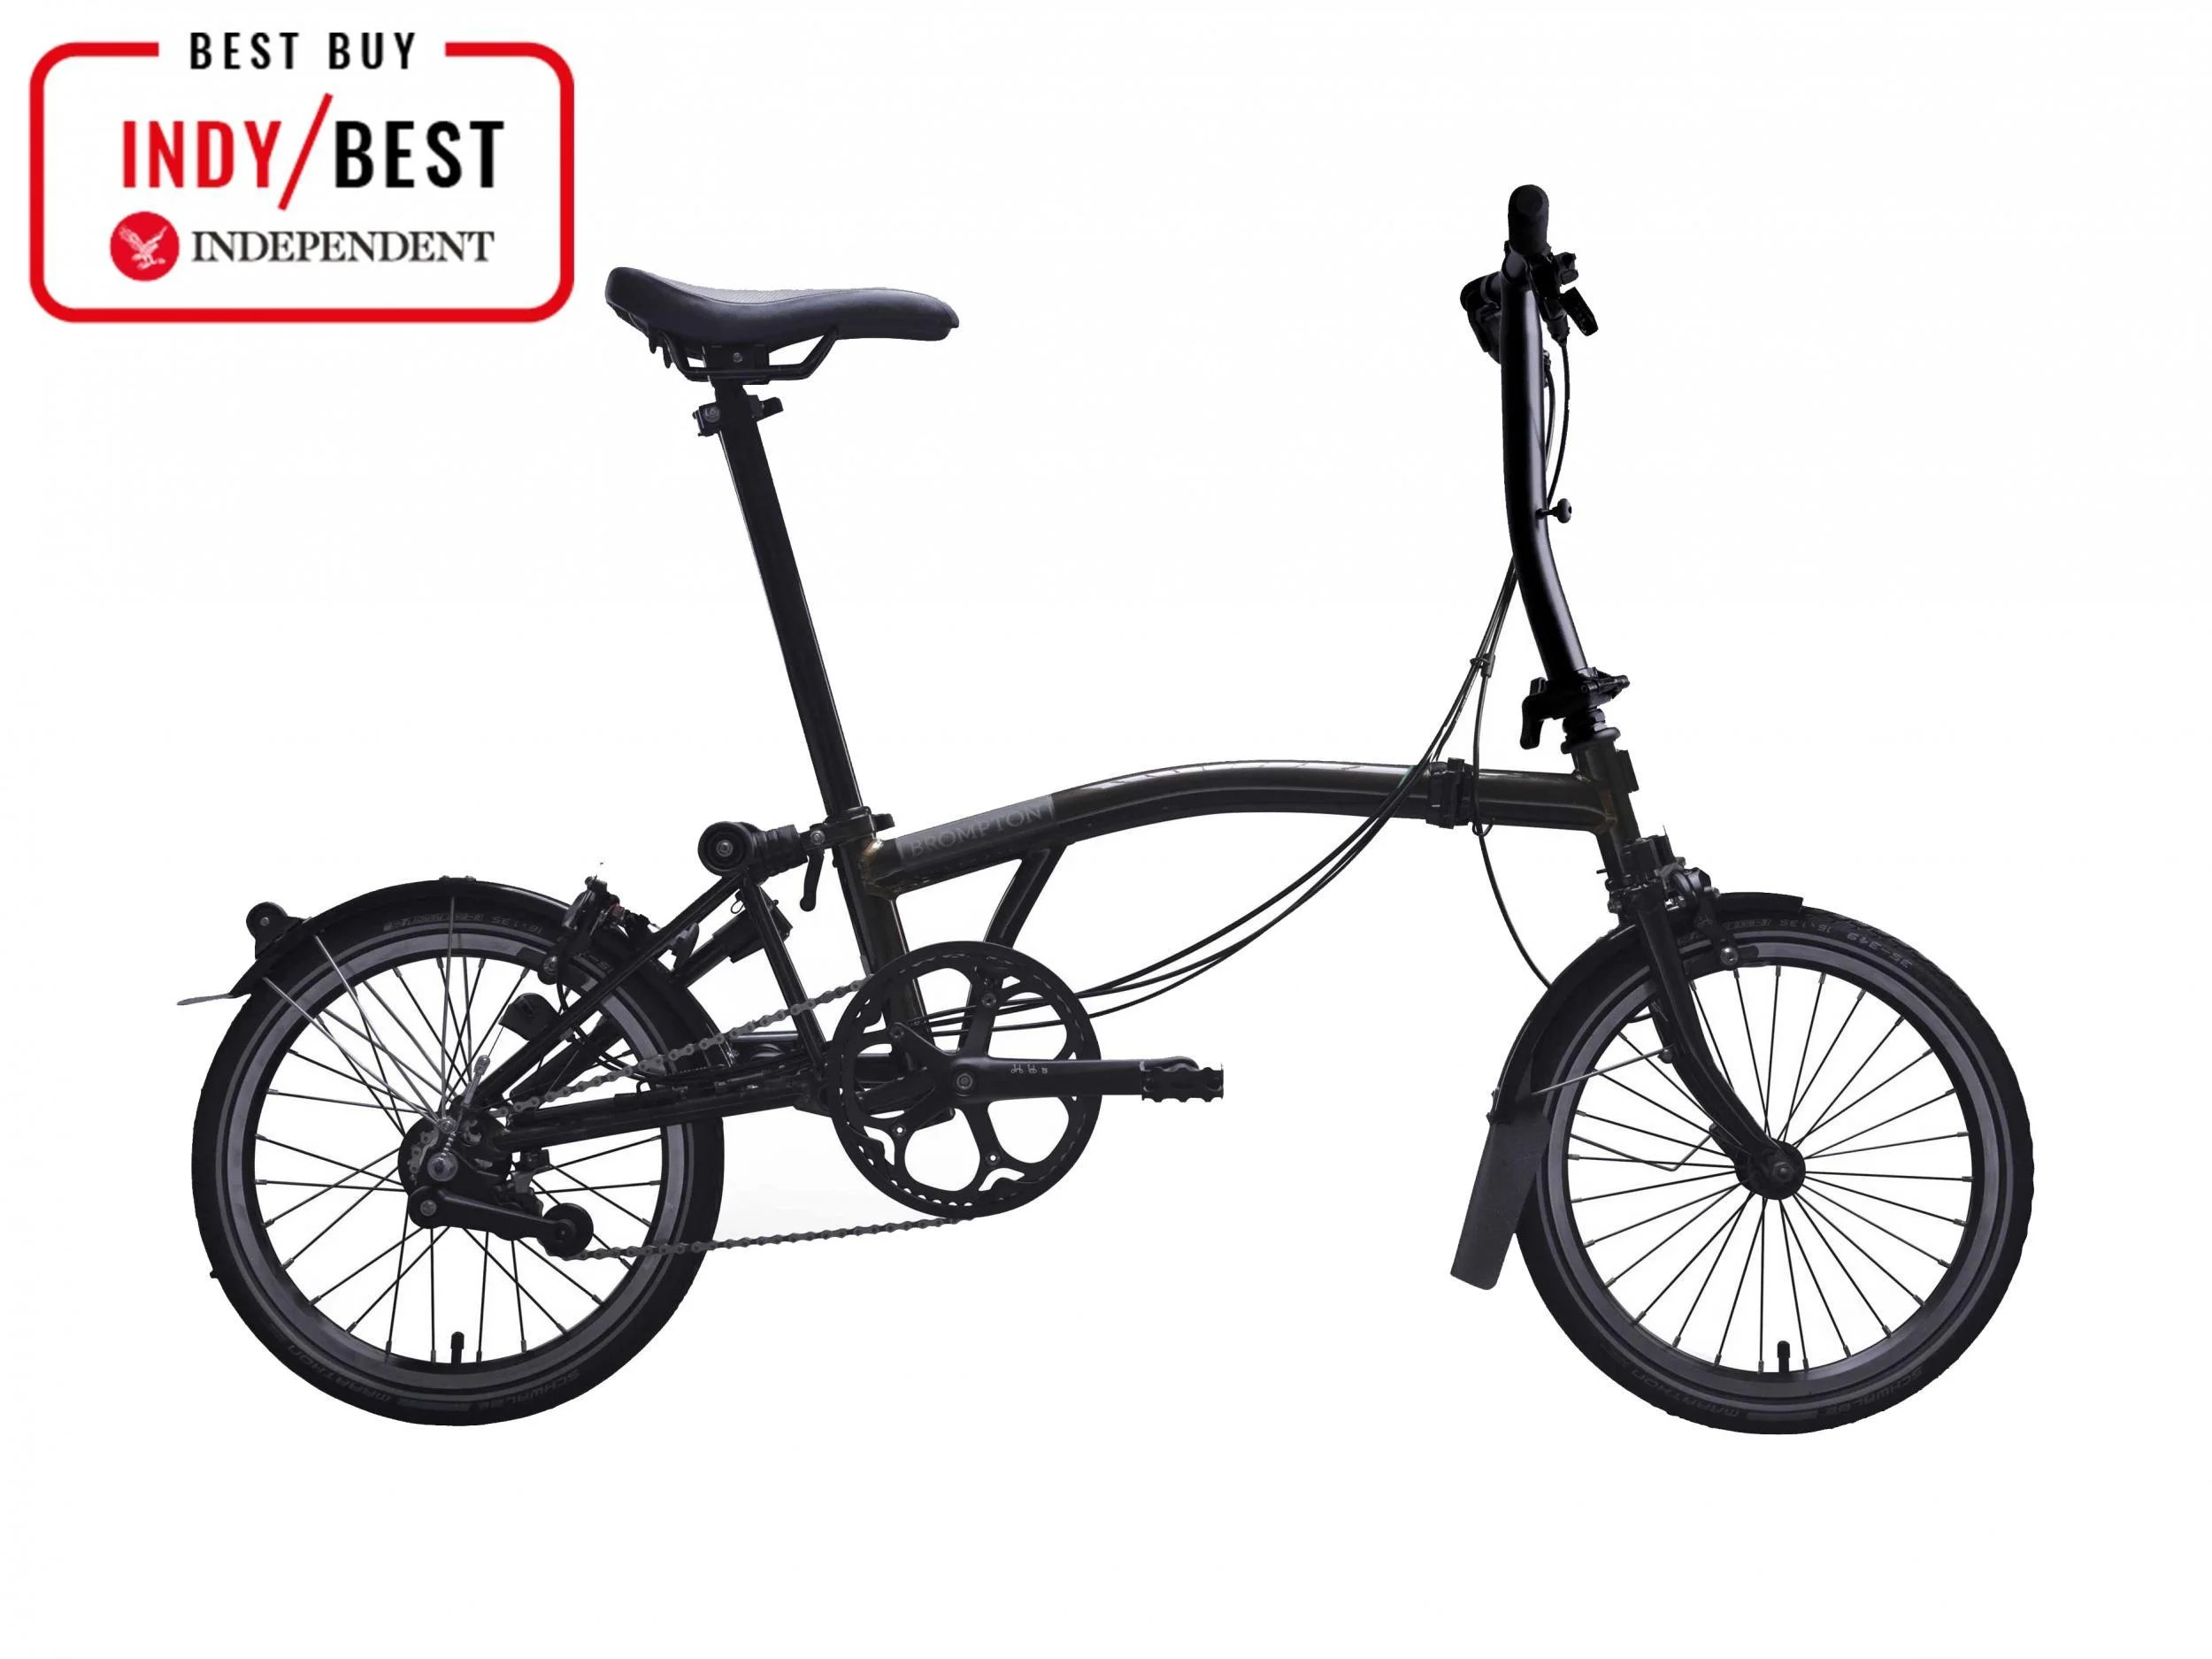 Brompton Bikes 10 Best Folding Bikes The Independent